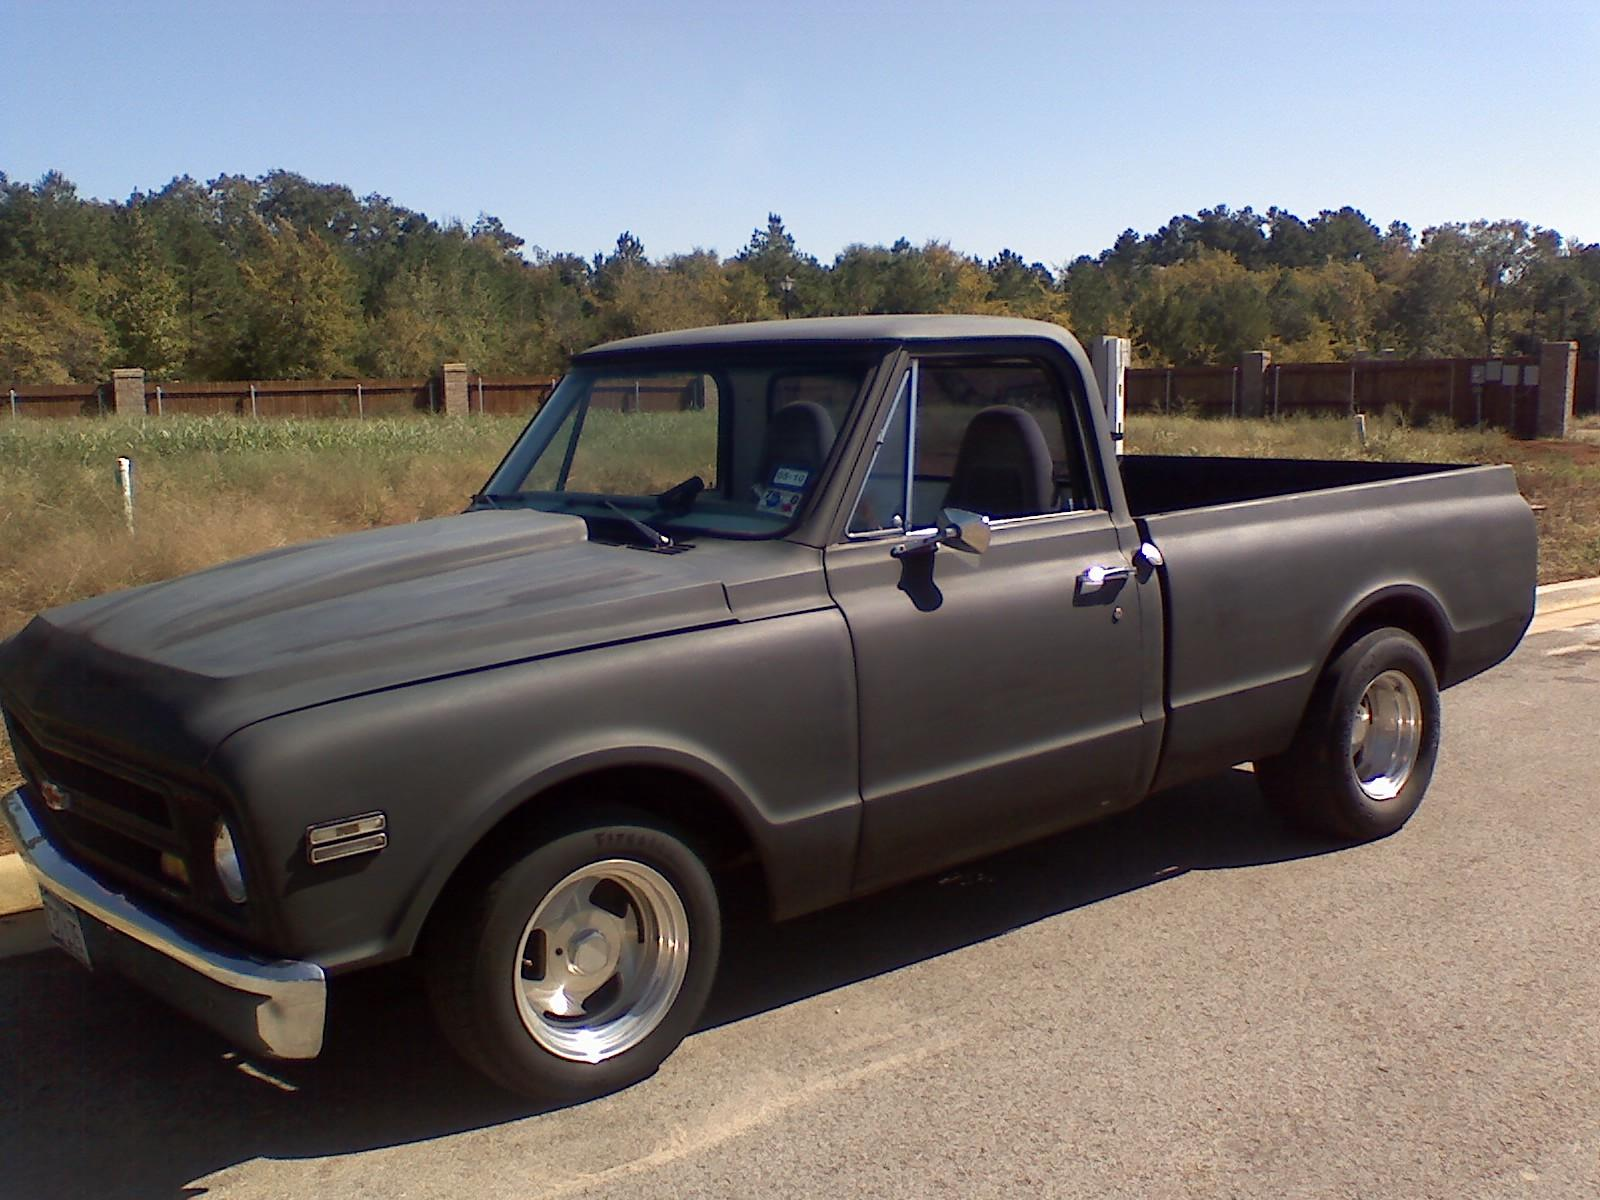 C 10man1 1968 Chevrolet K Pick Up Specs Photos Modification Info Chevy C10 Lifted 23638240044 Original